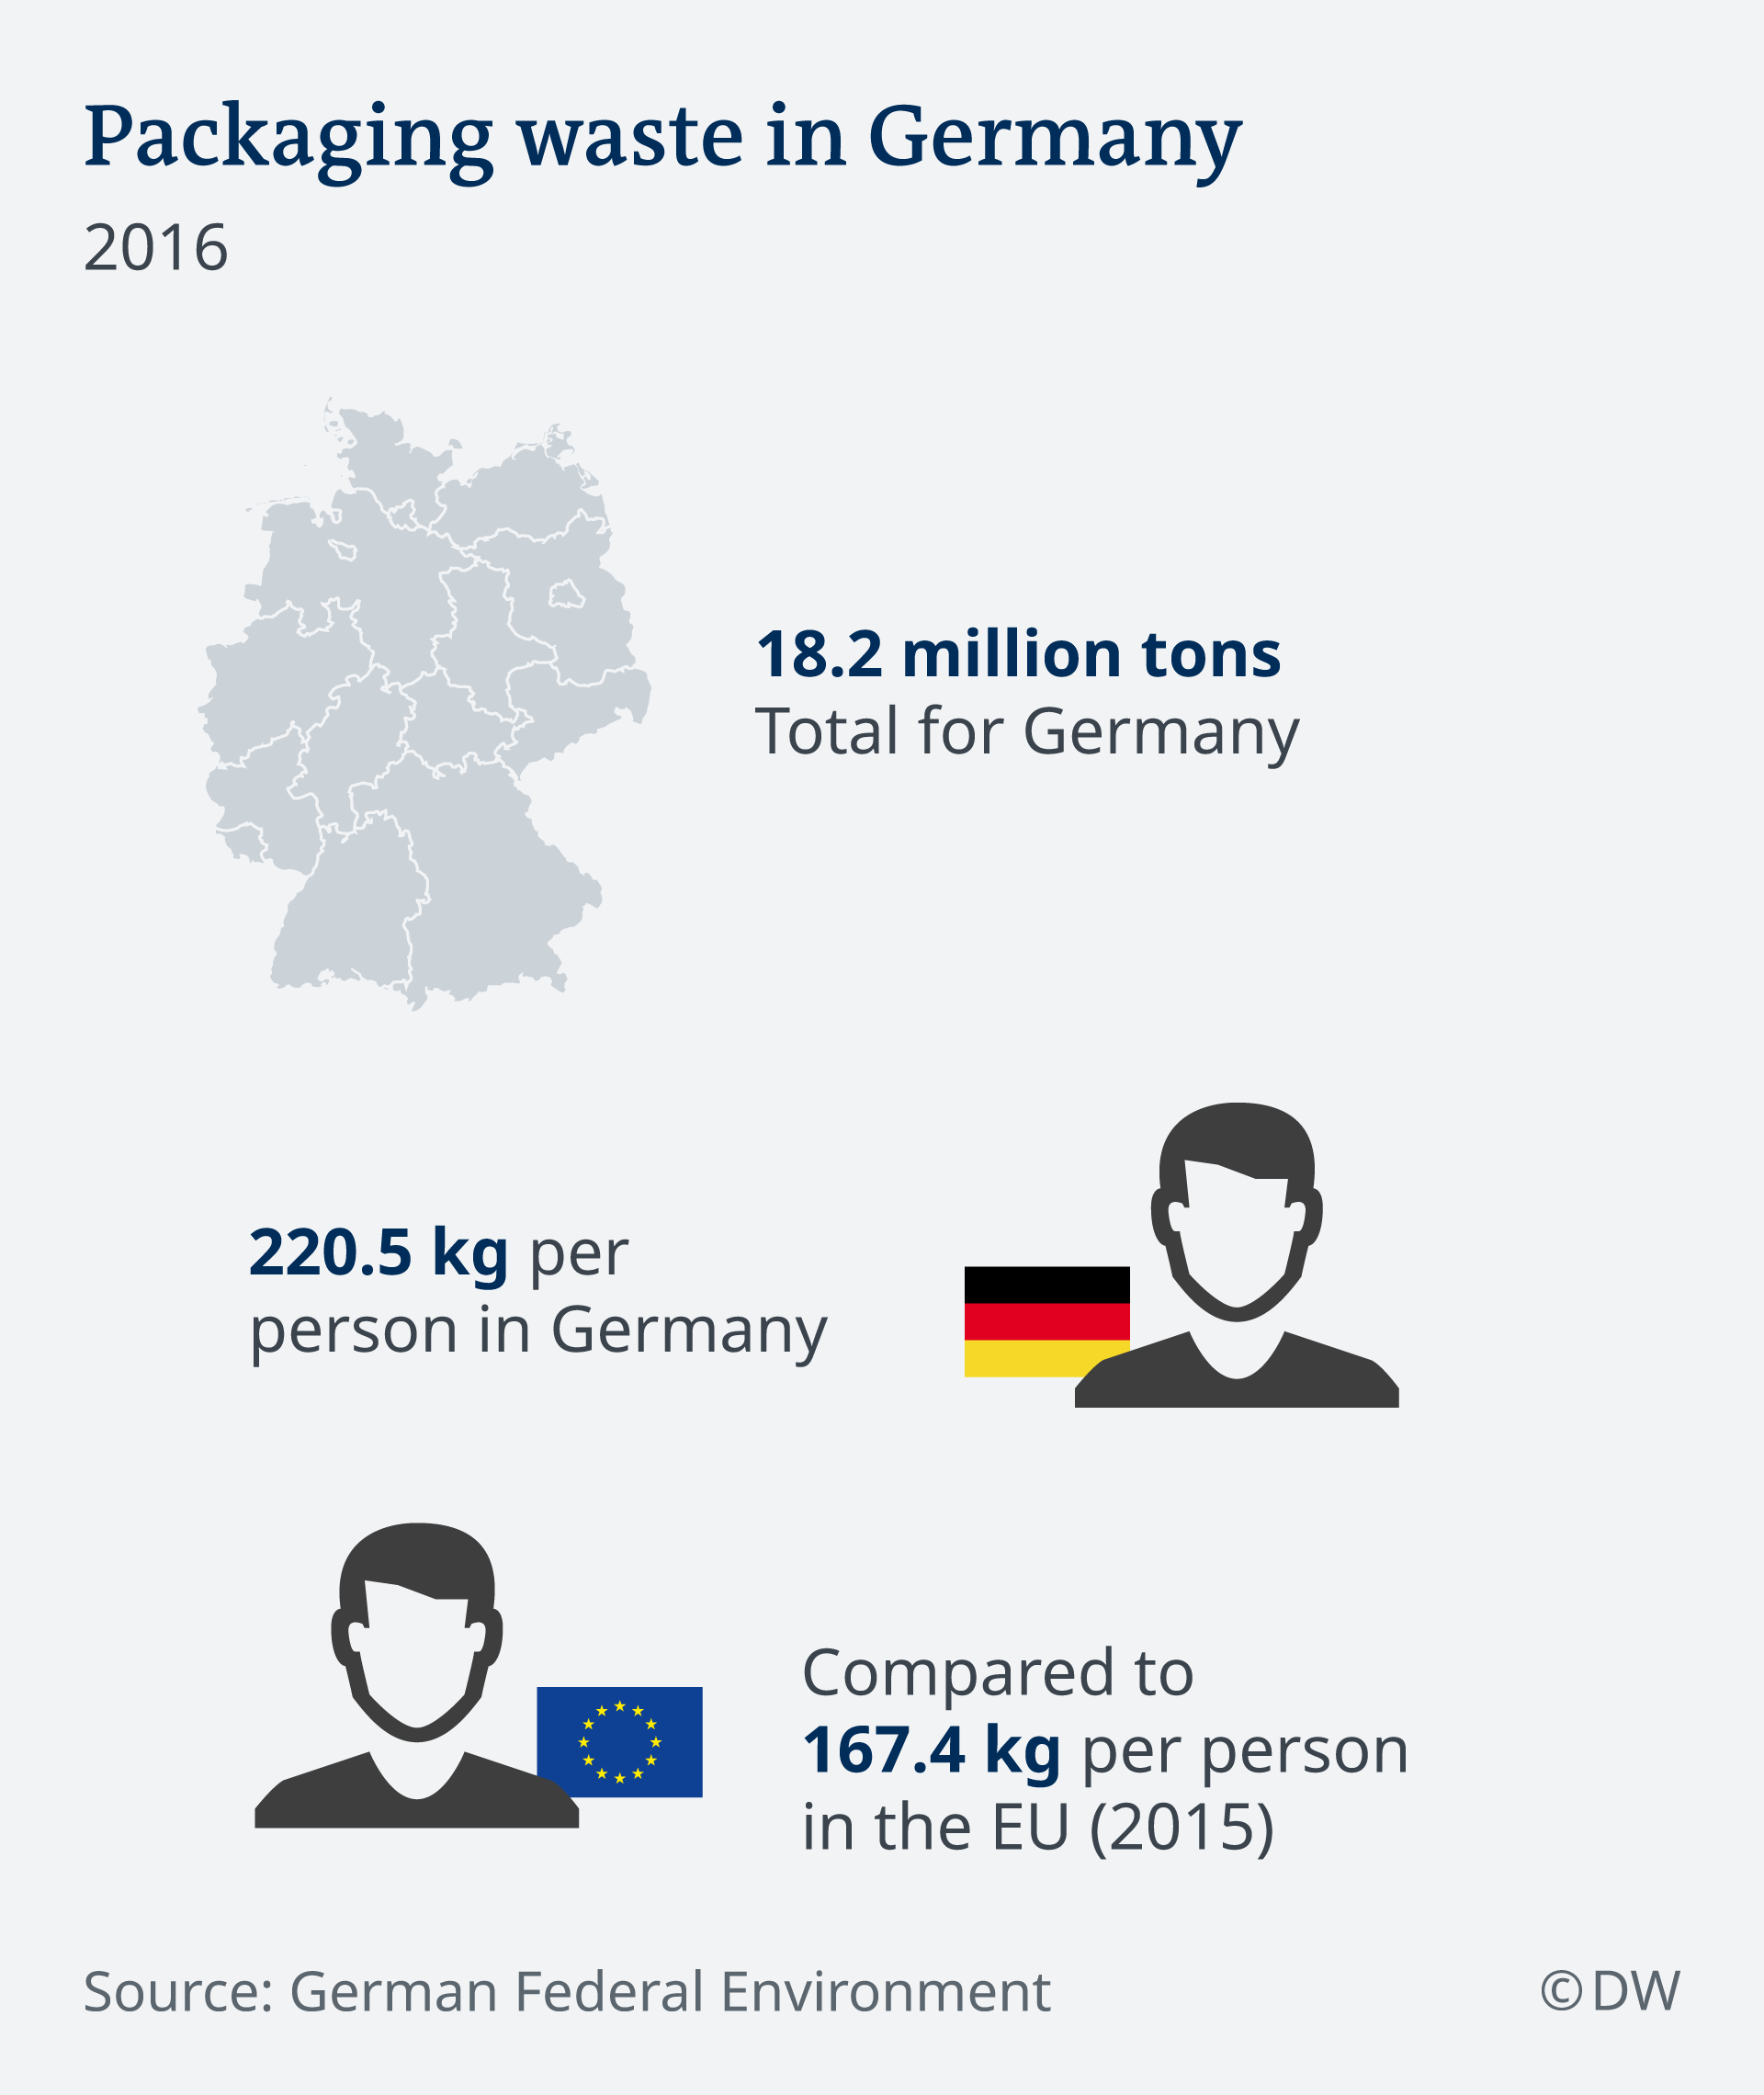 Infographic showing packaging waste in Germany